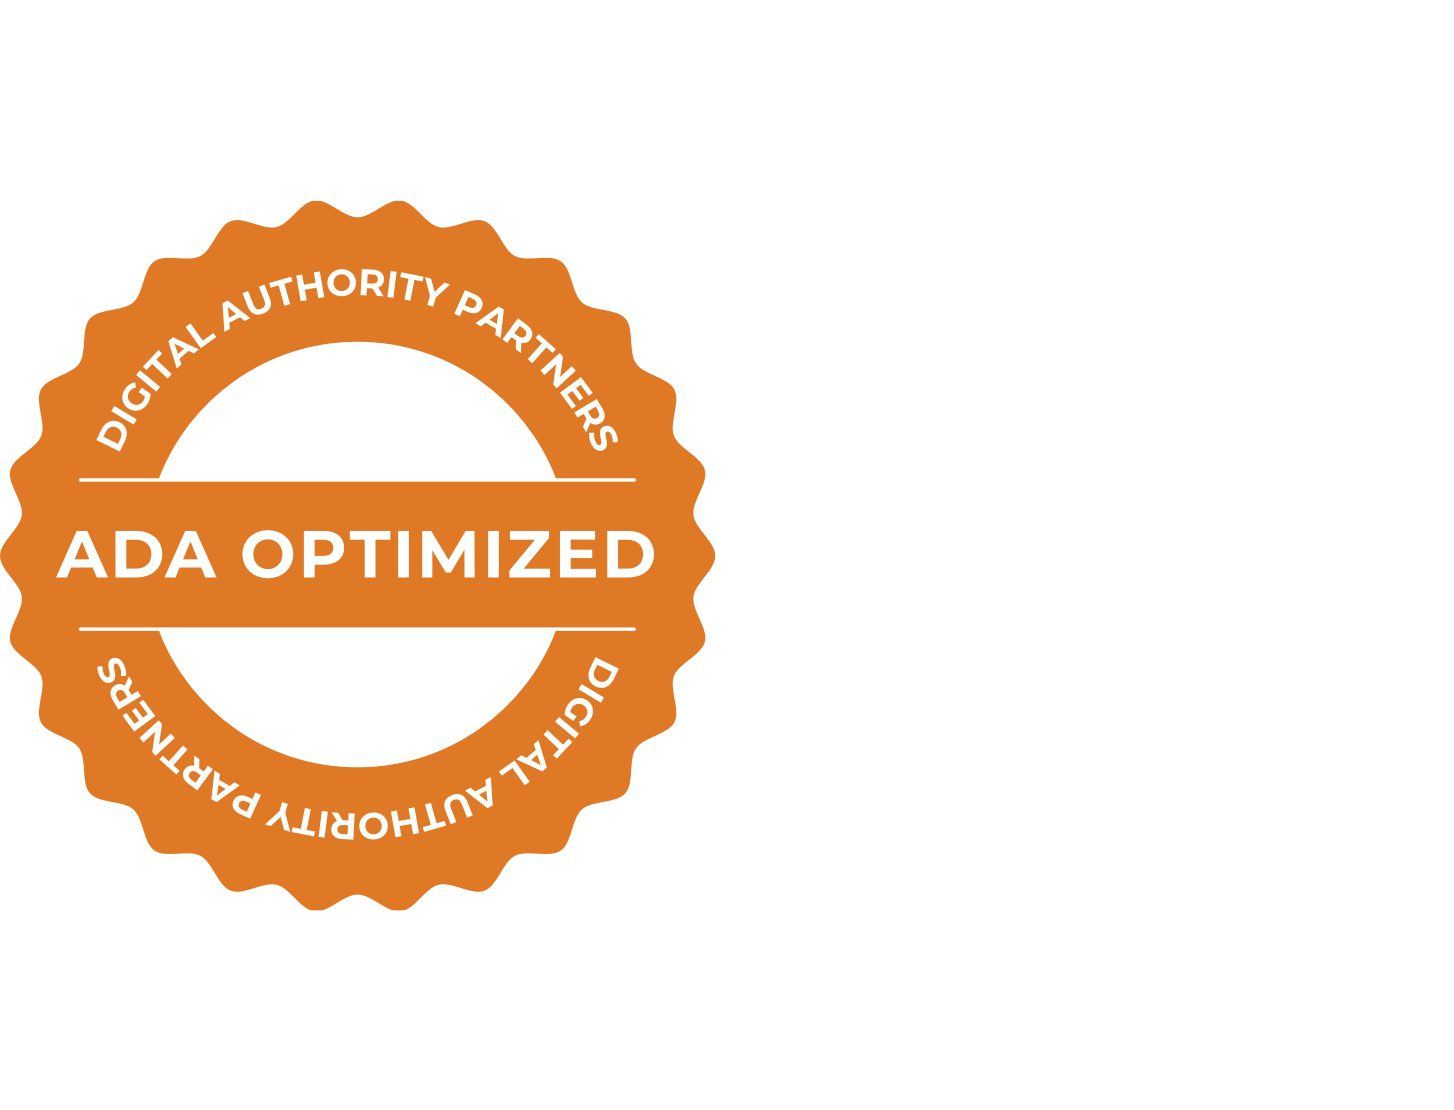 The ADA Optimized seal.